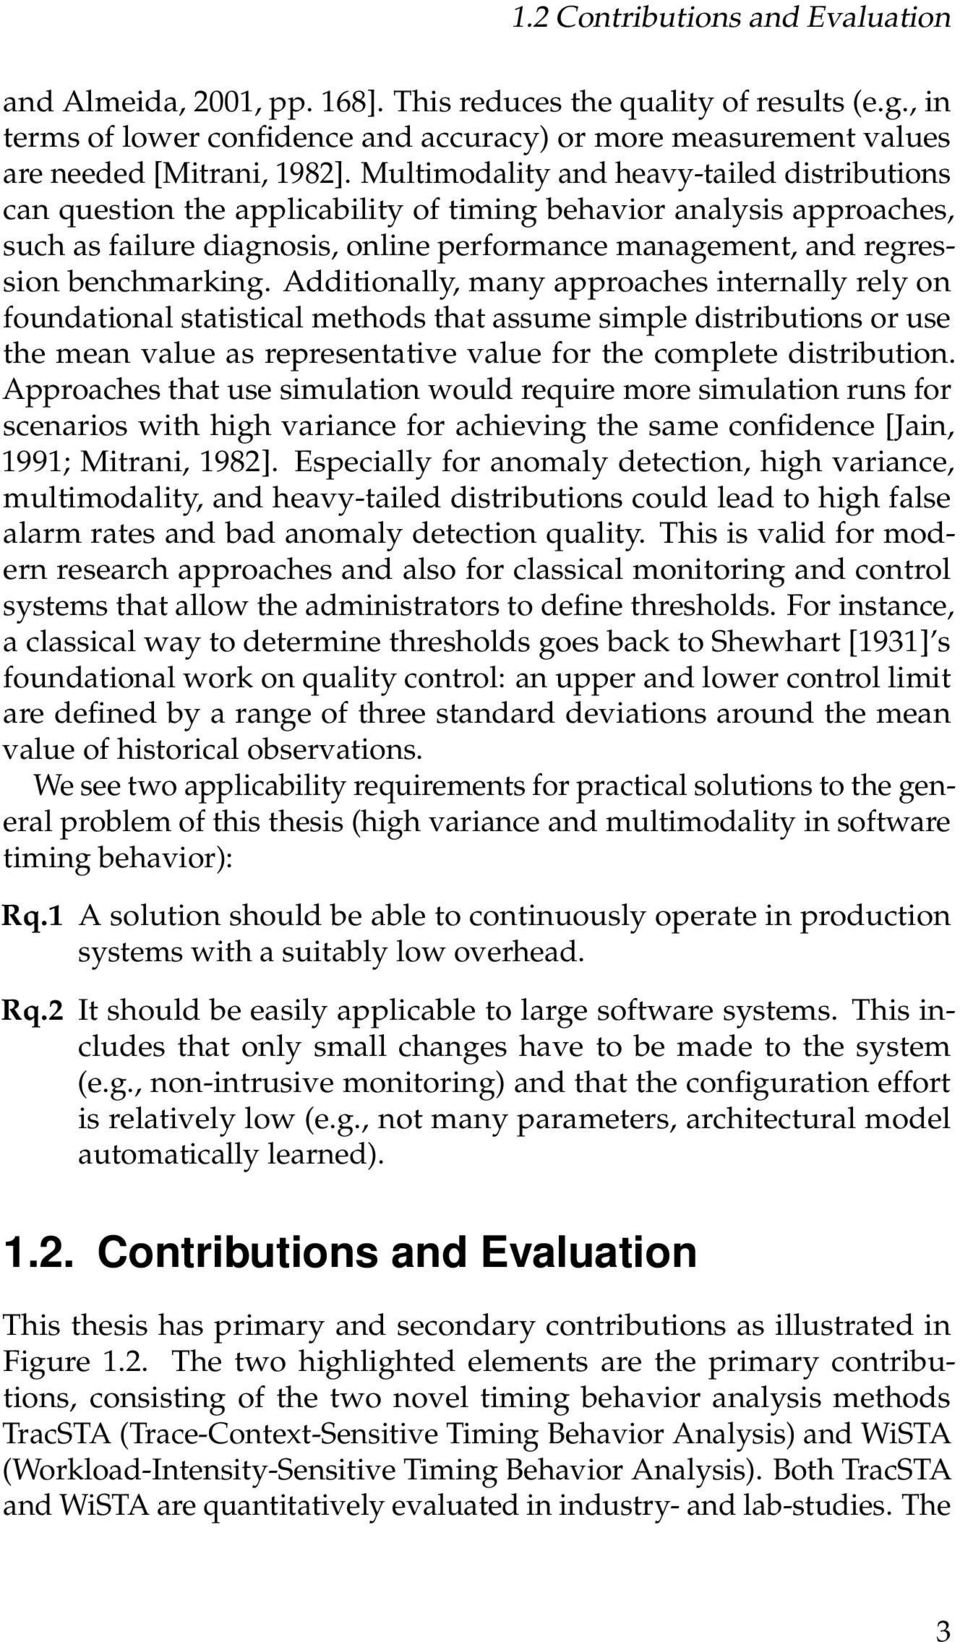 Multimodality and heavy-tailed distributions can question the applicability of timing behavior analysis approaches, such as failure diagnosis, online performance management, and regression